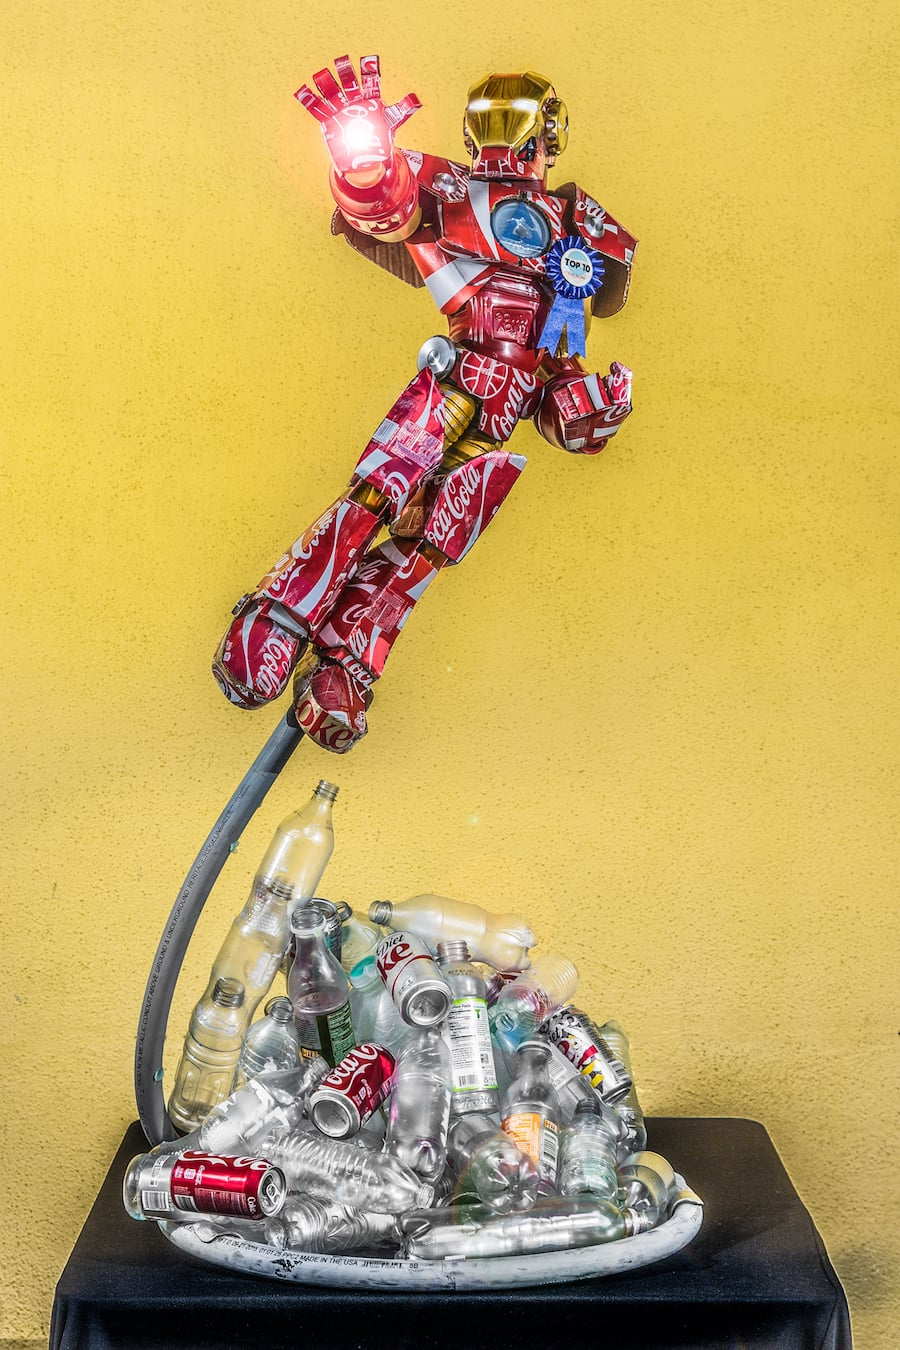 Disneyland Resort Cast Members Make Art Out Of Recyclables